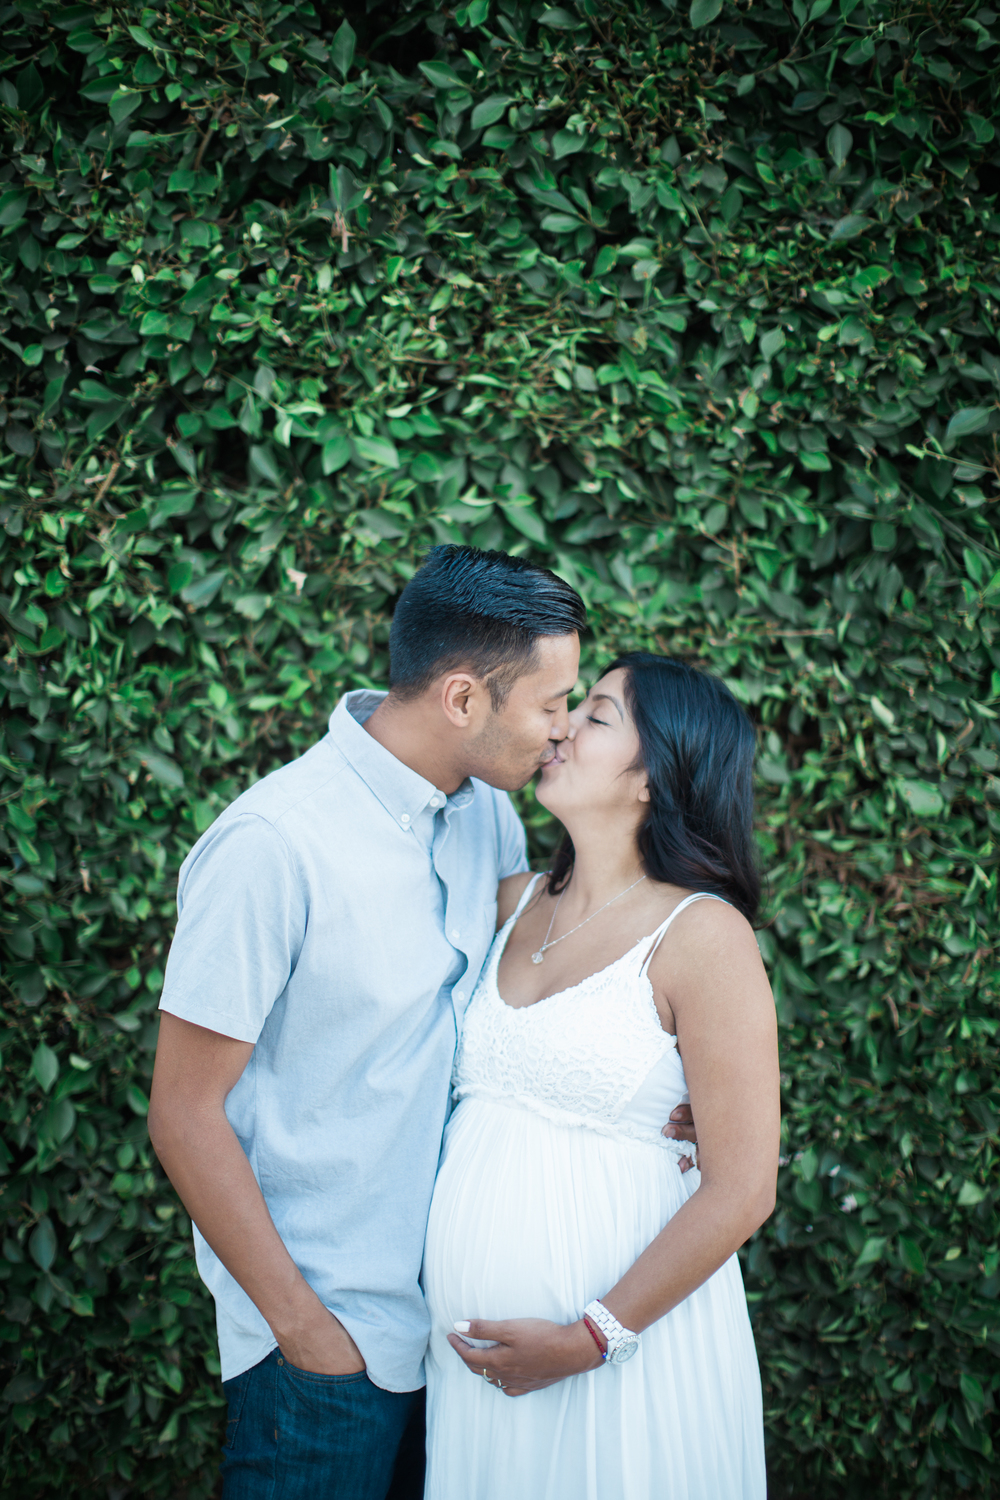 Marcella_Maternity_Cerritos_BrandonJFerlin_Photography-63.jpg